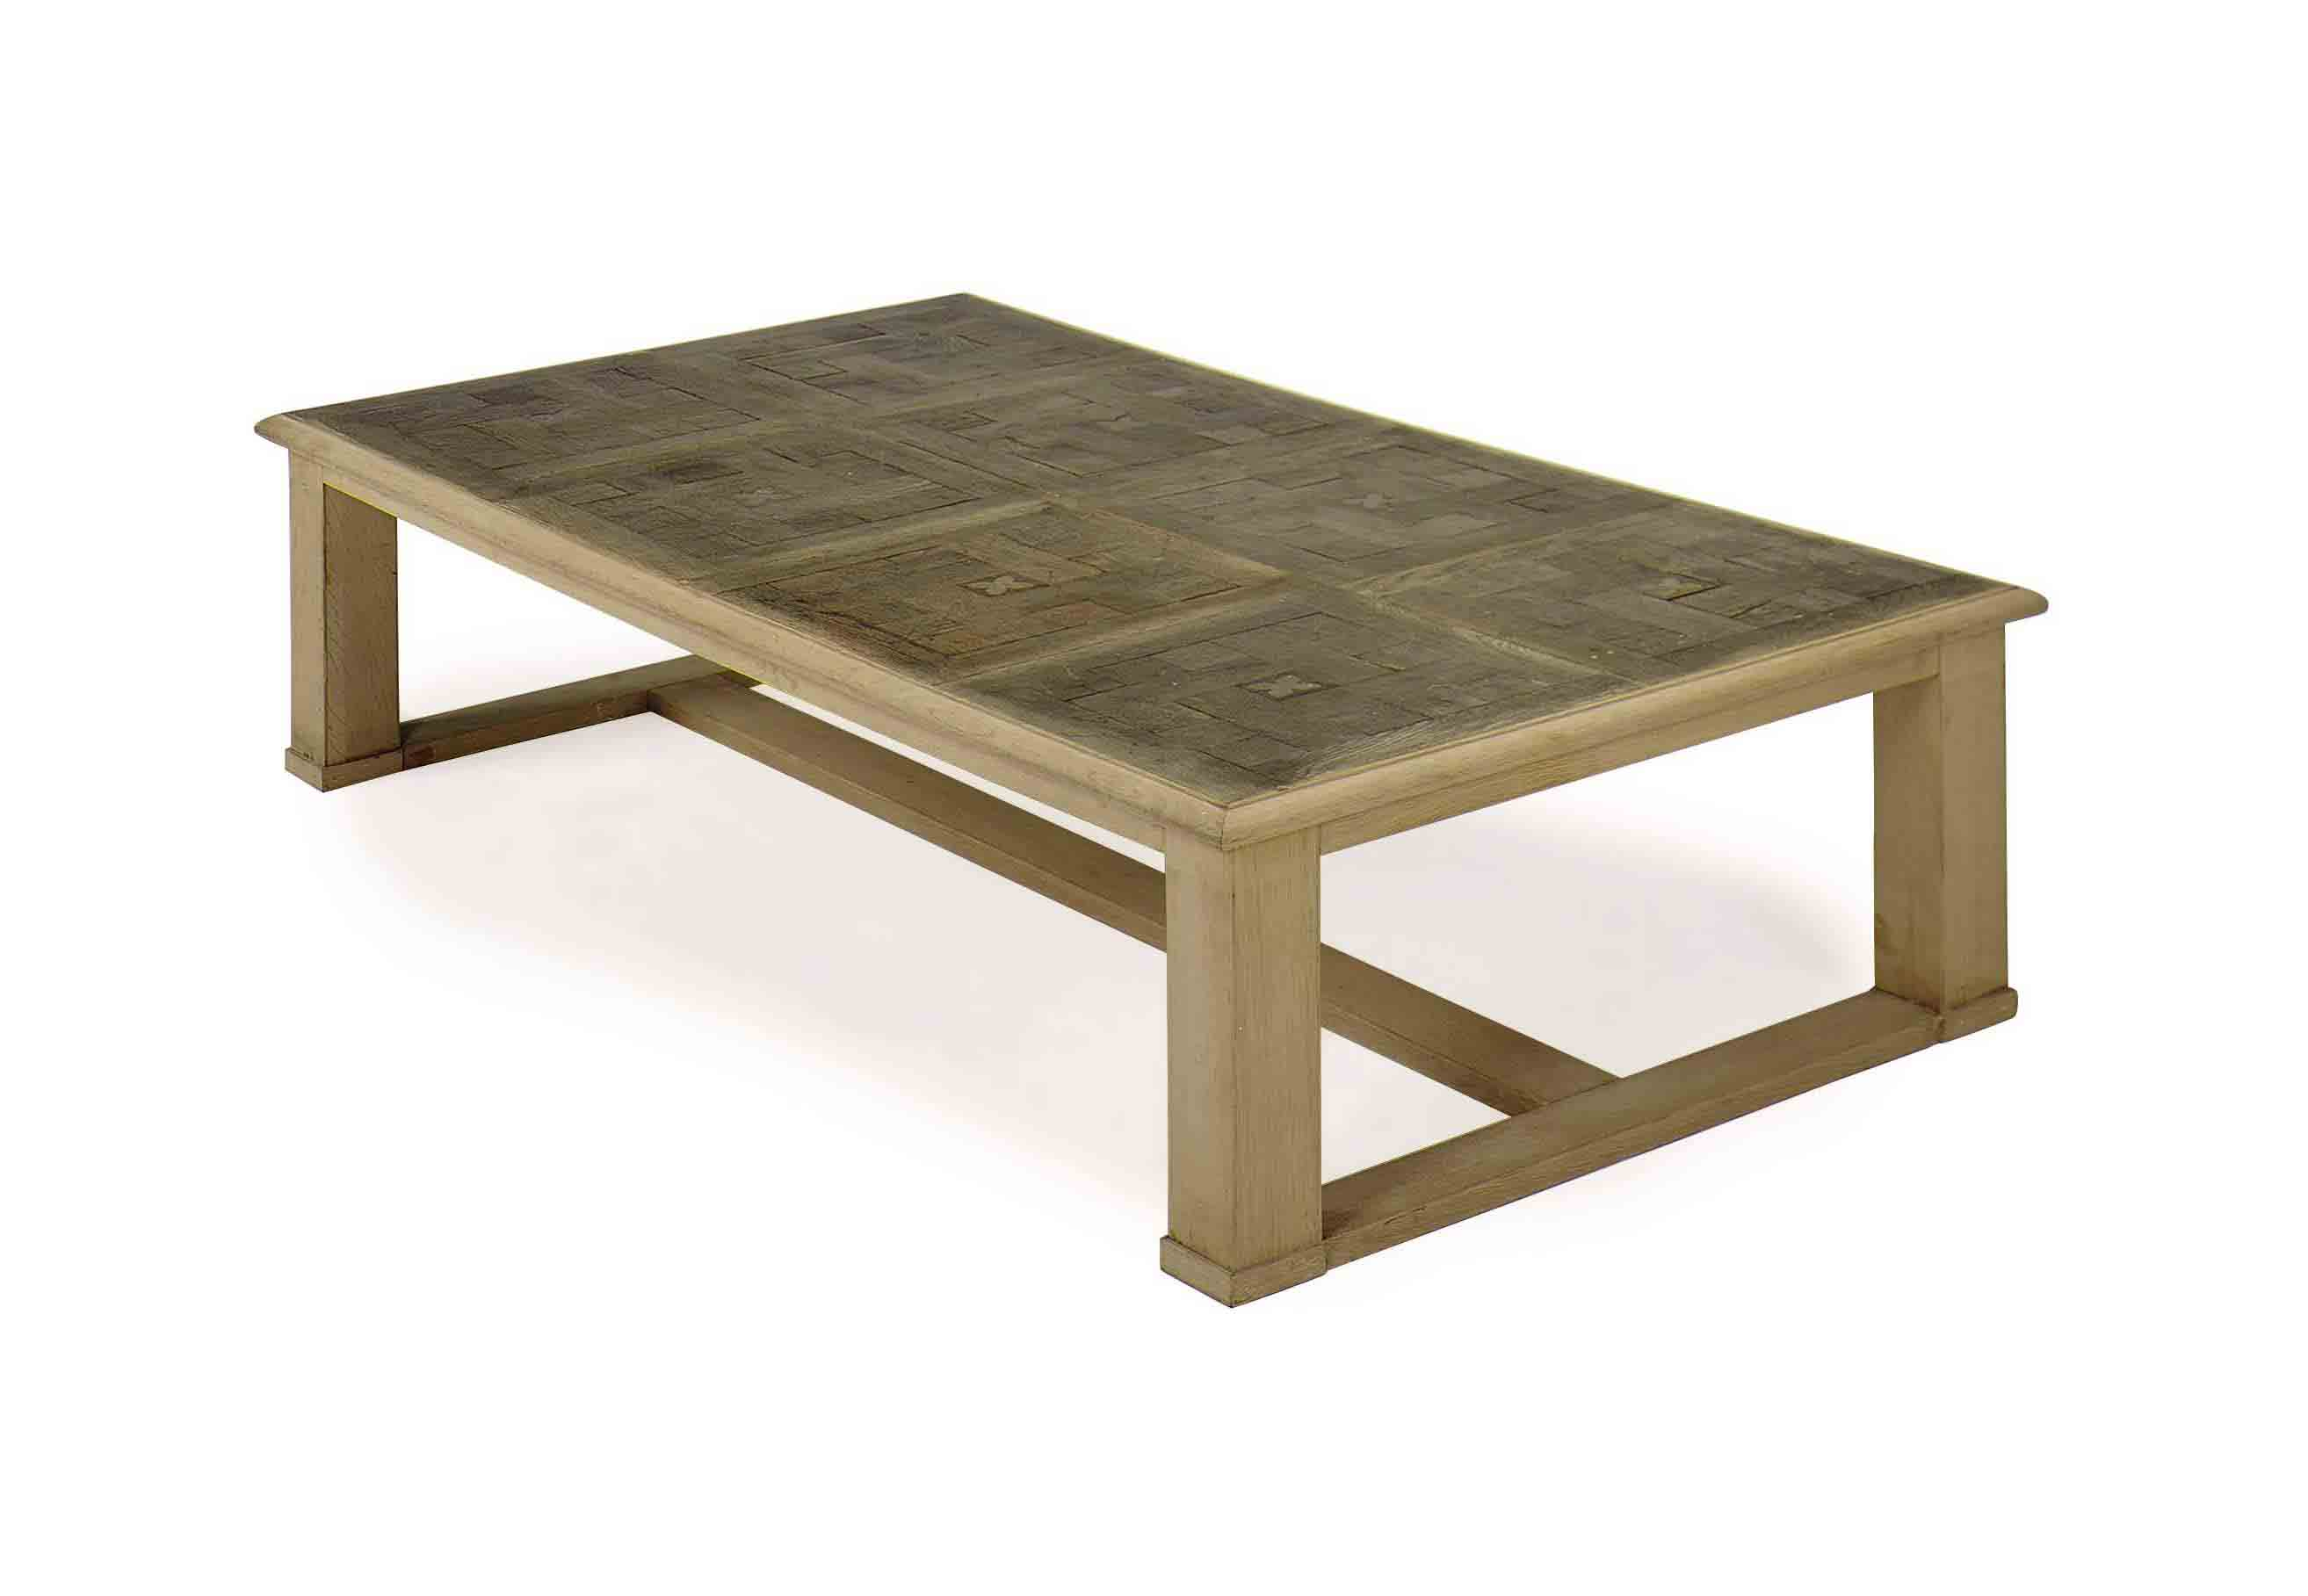 AN OAK AND PARQUETRY LOW TABLE